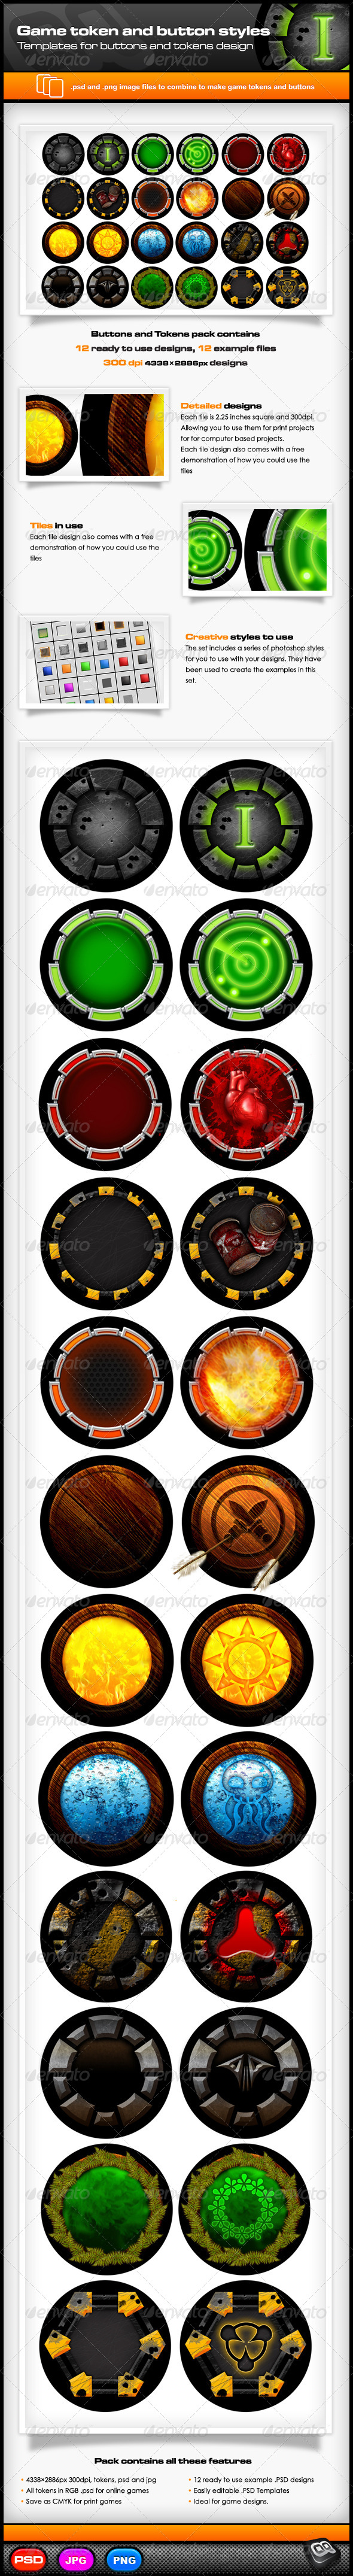 Game Token and Button Templates - Illustrations Graphics